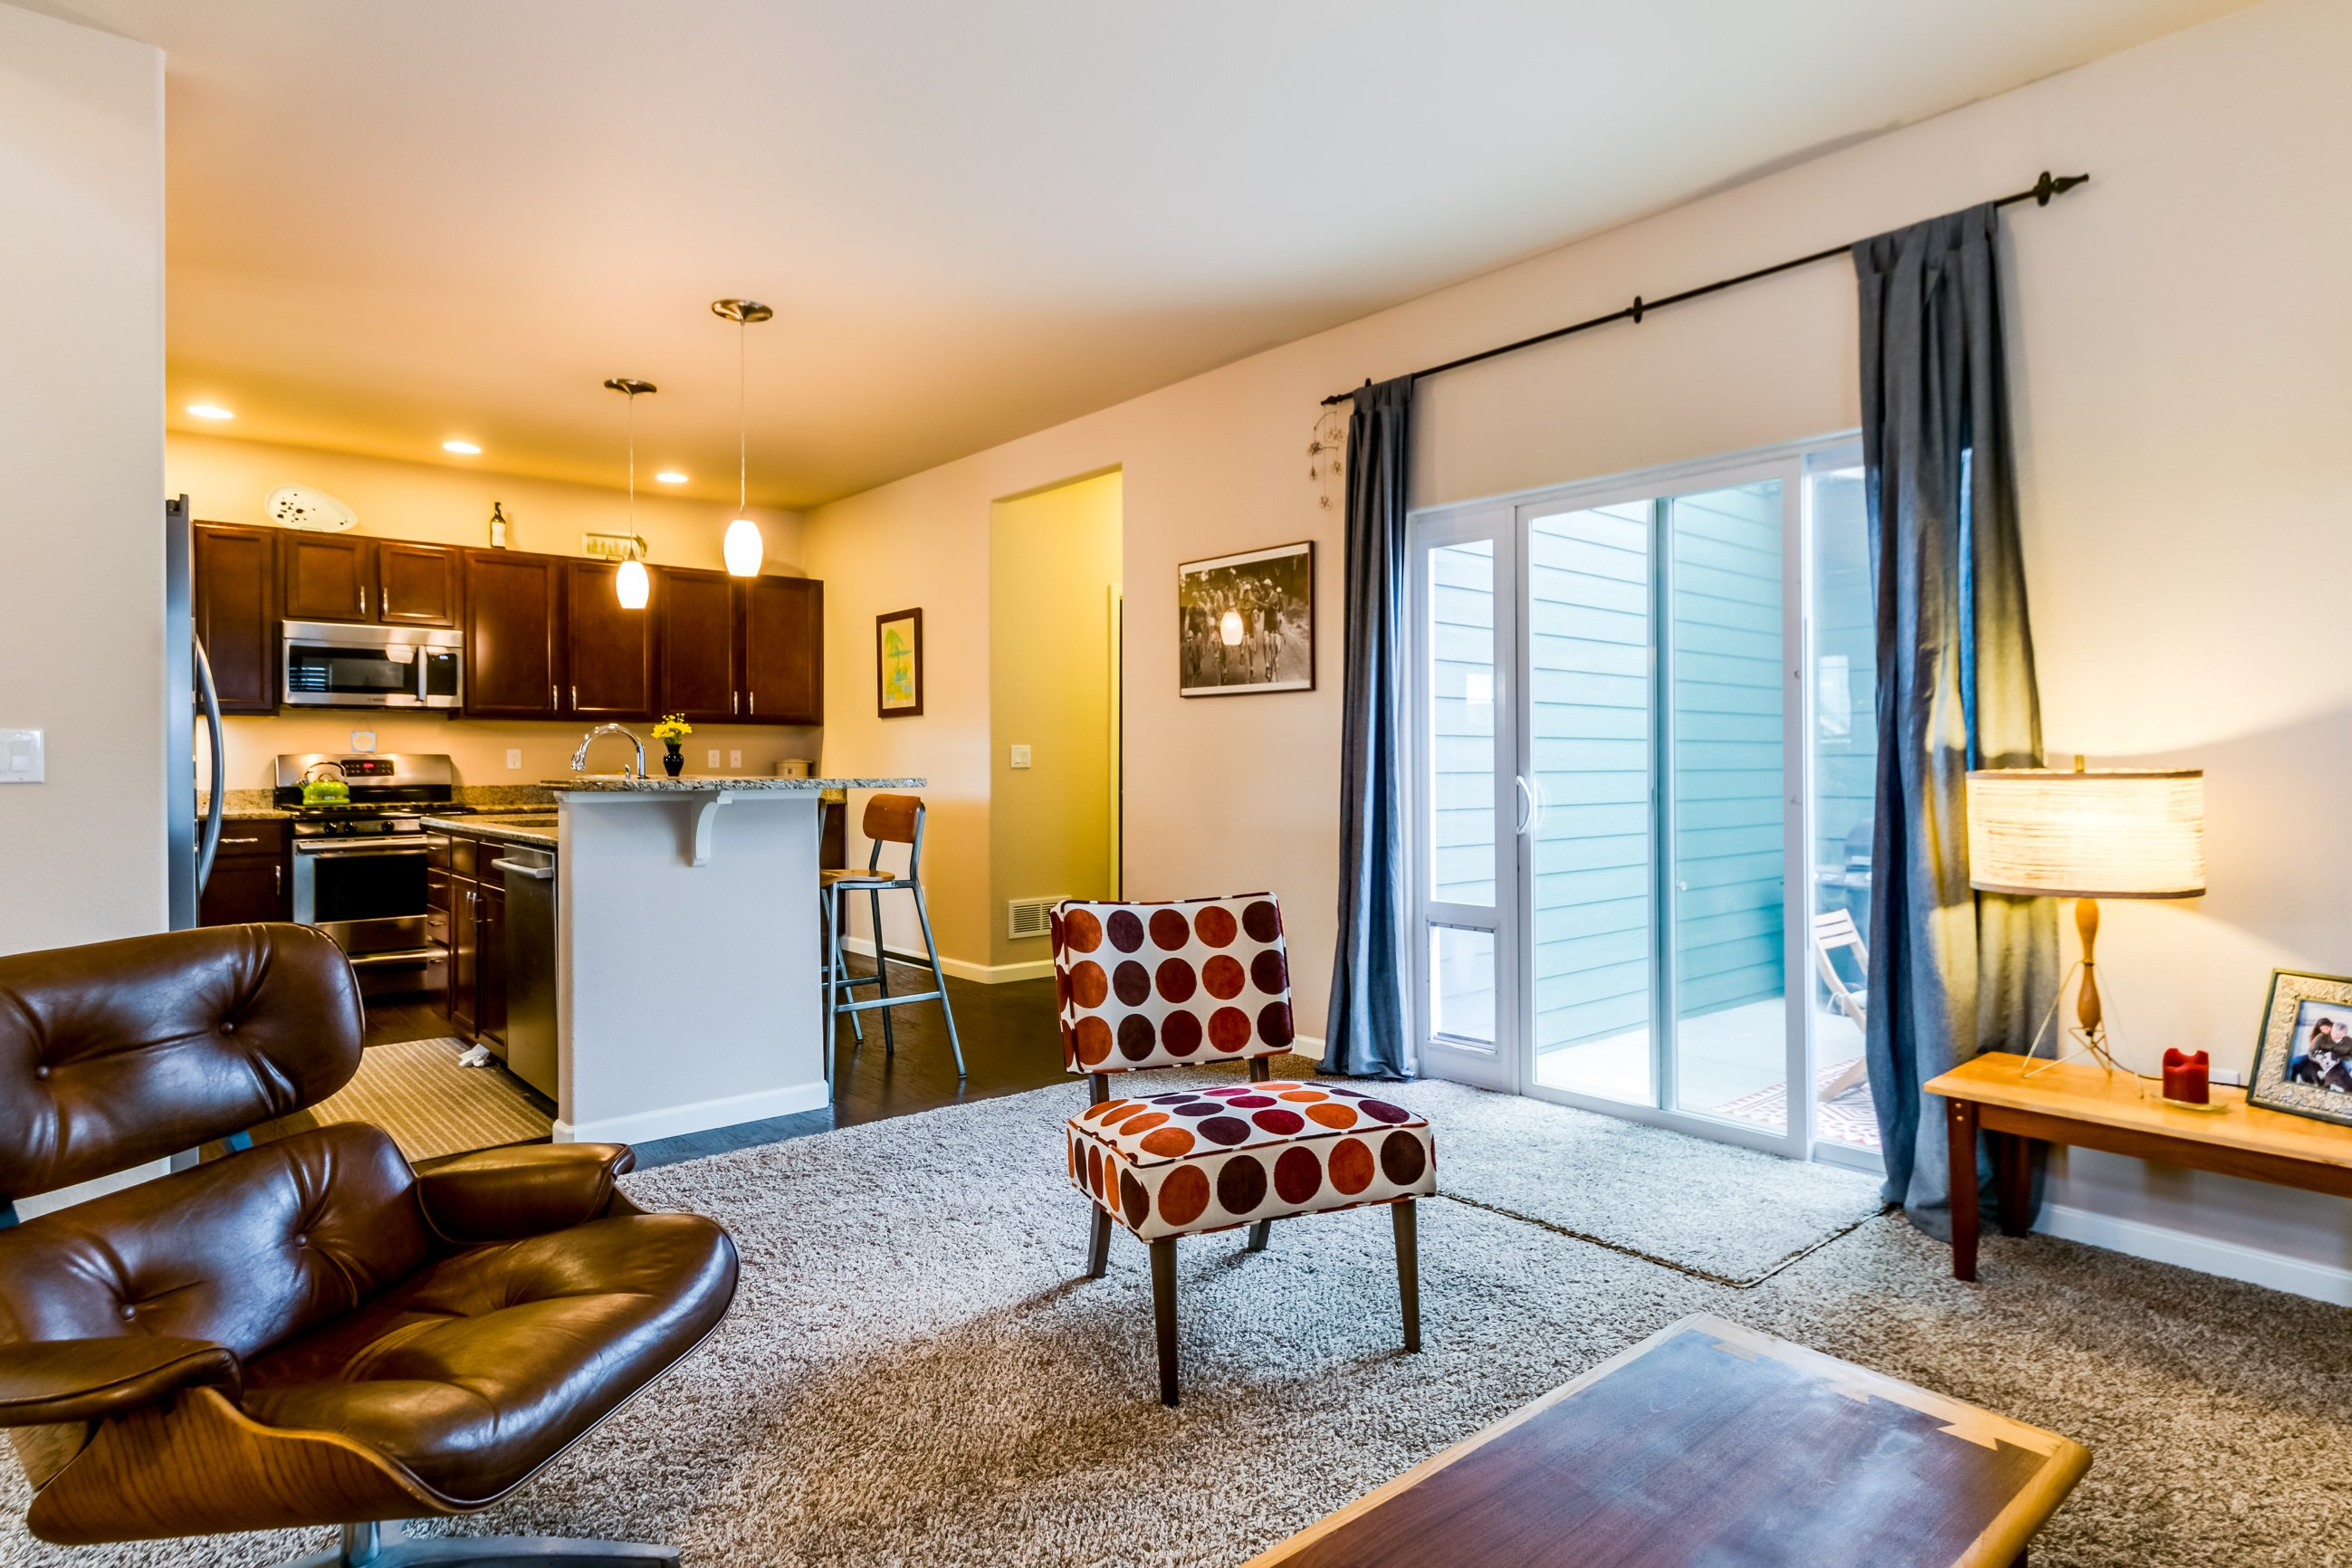 Homes for sale in Gold Hill Mesa